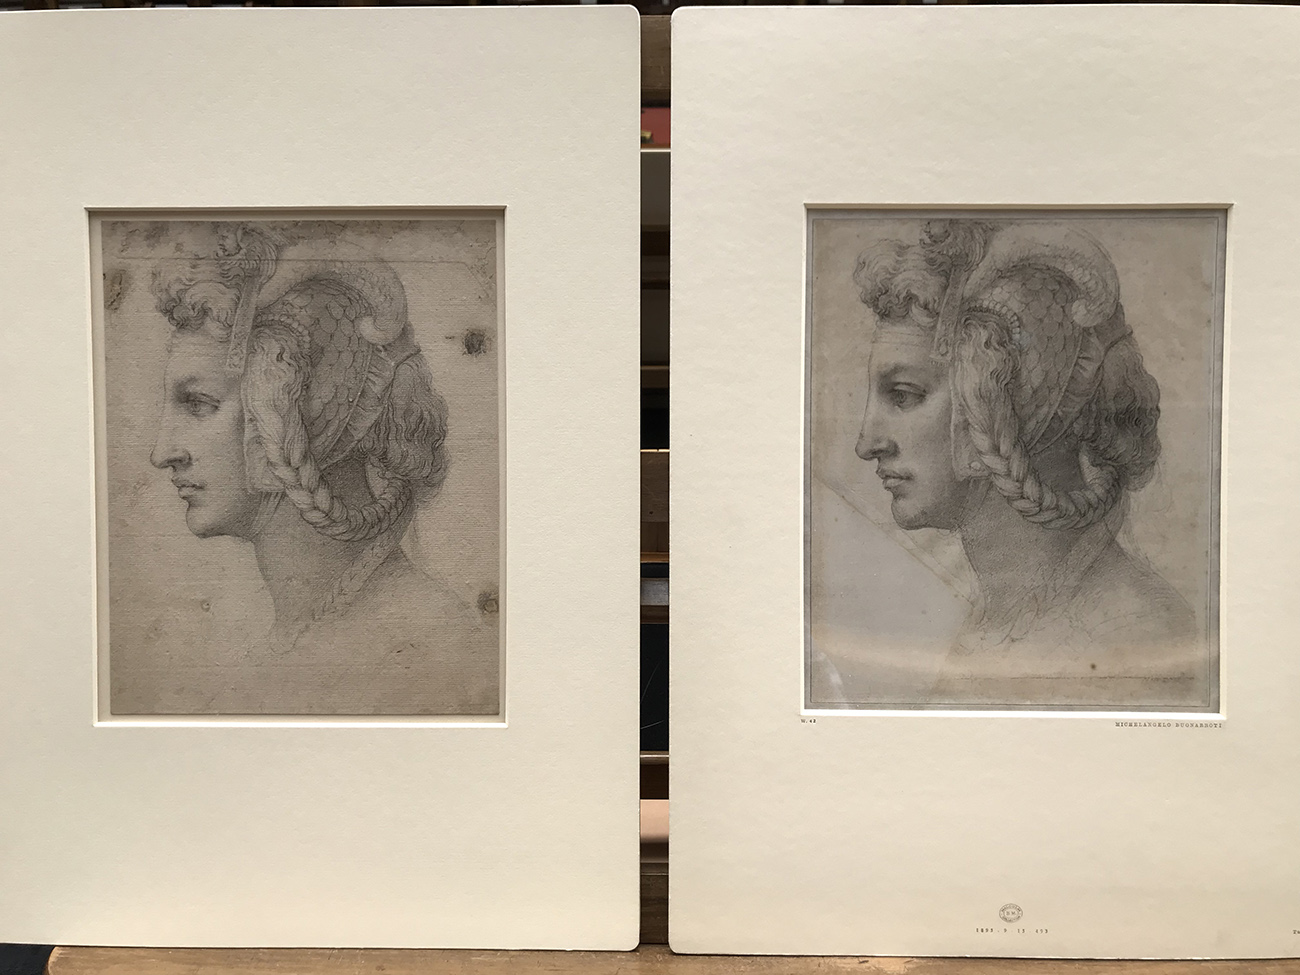 An original and an almost identical copy of a drawing of a profile of a woman with braids and a headdress.